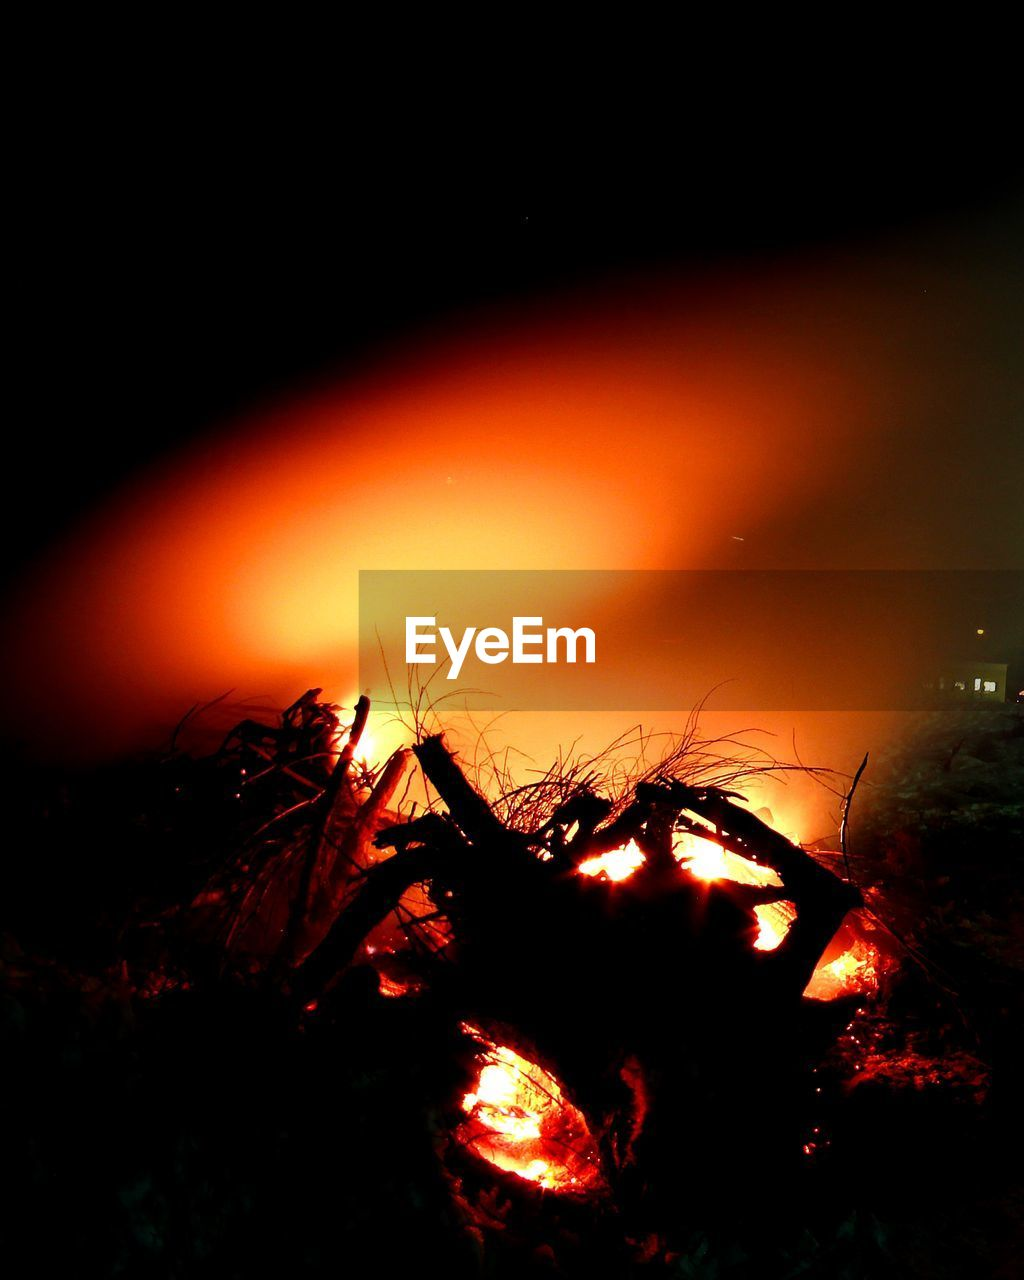 night, heat - temperature, tree, nature, fire, flame, orange color, burning, fire - natural phenomenon, no people, sky, plant, environment, bonfire, glowing, outdoors, beauty in nature, land, tranquility, log, campfire, power in nature